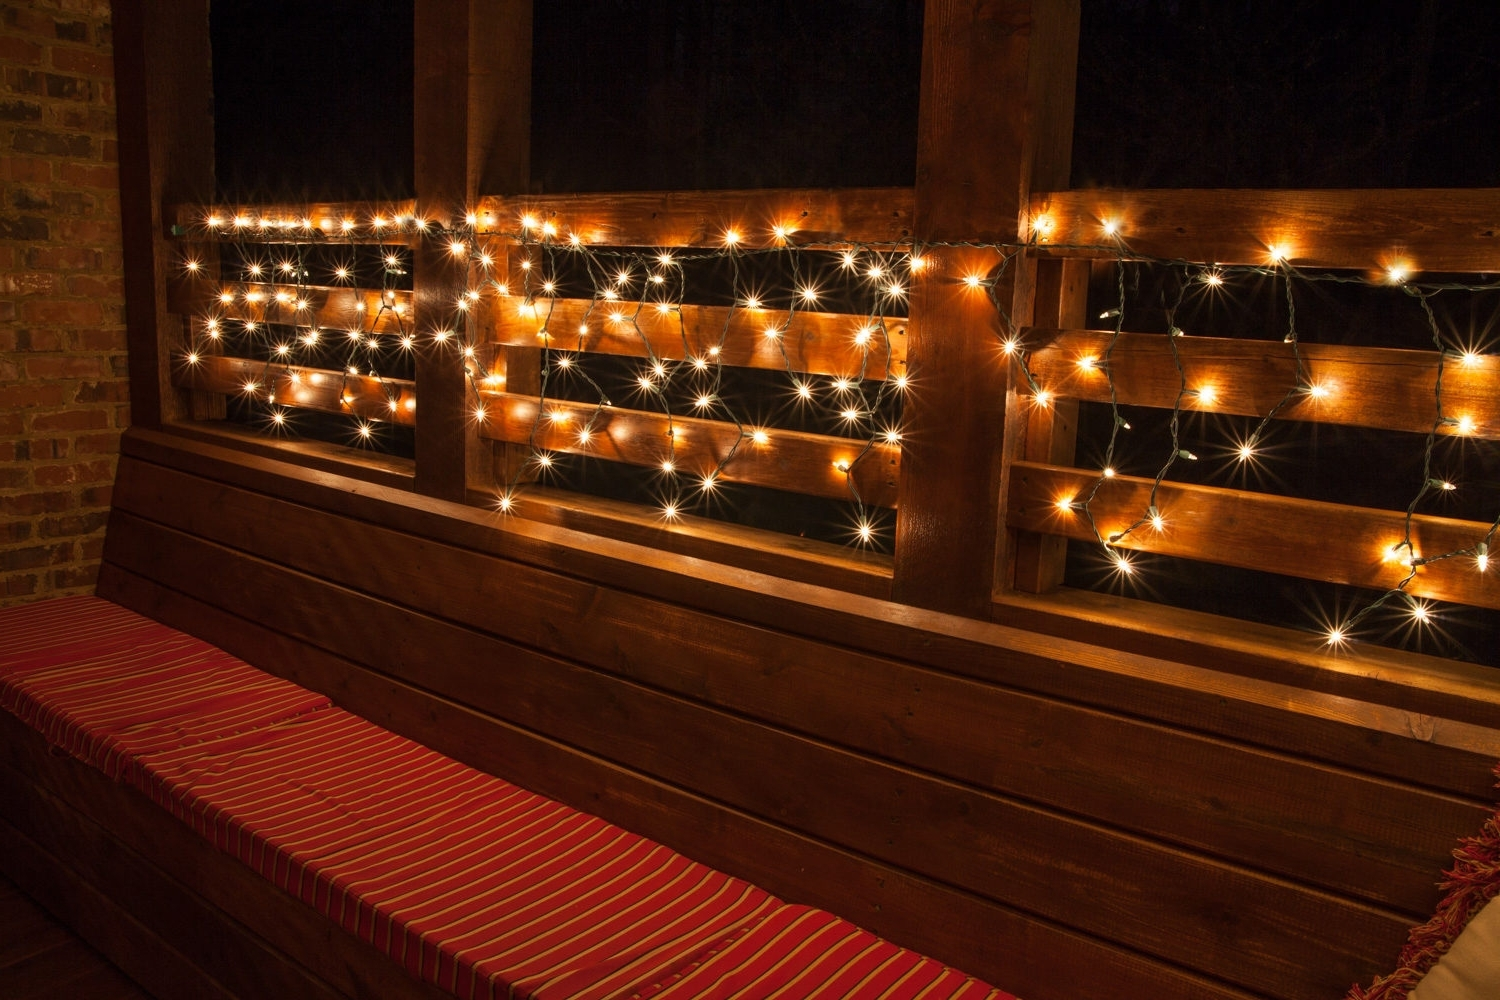 Deck Lighting Ideas With Brilliant Results! – Yard Envy With Most Recent Hanging Outdoor Lights On Deck (View 10 of 20)